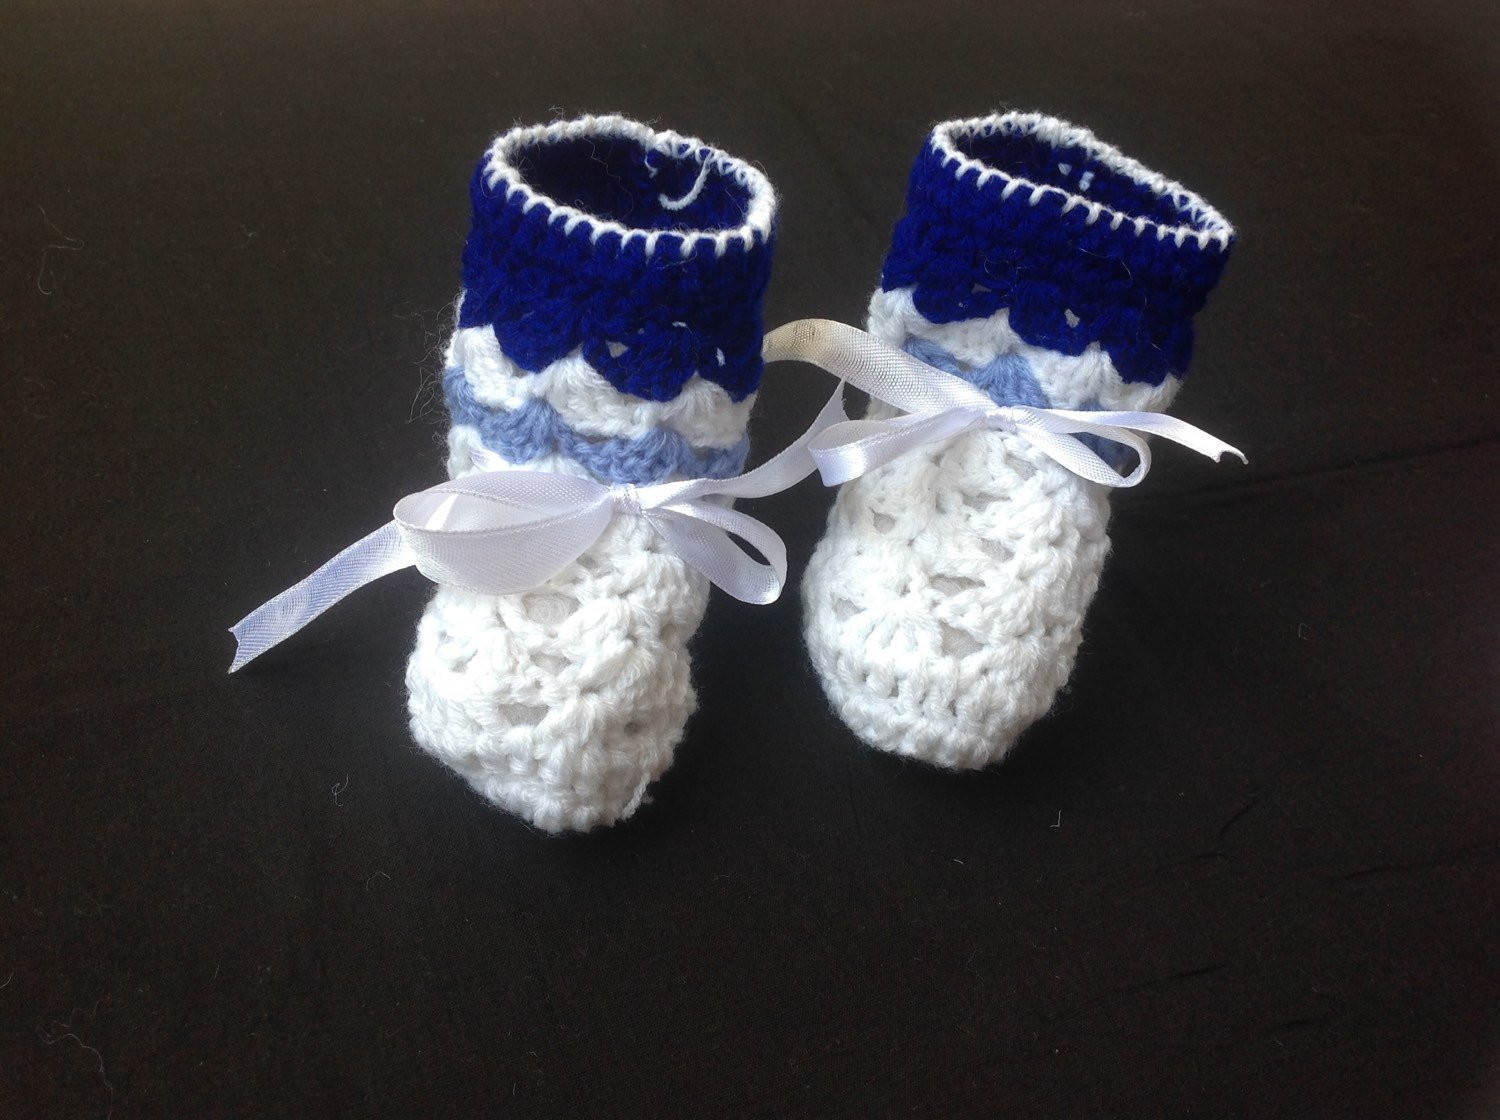 Beautiful Crochet Pattern Baby Booties socks Slippers Newborn socks Crochet Baby socks Of Beautiful Crochet Baby Booties Patterns for Sweet Little Feet Crochet Baby socks